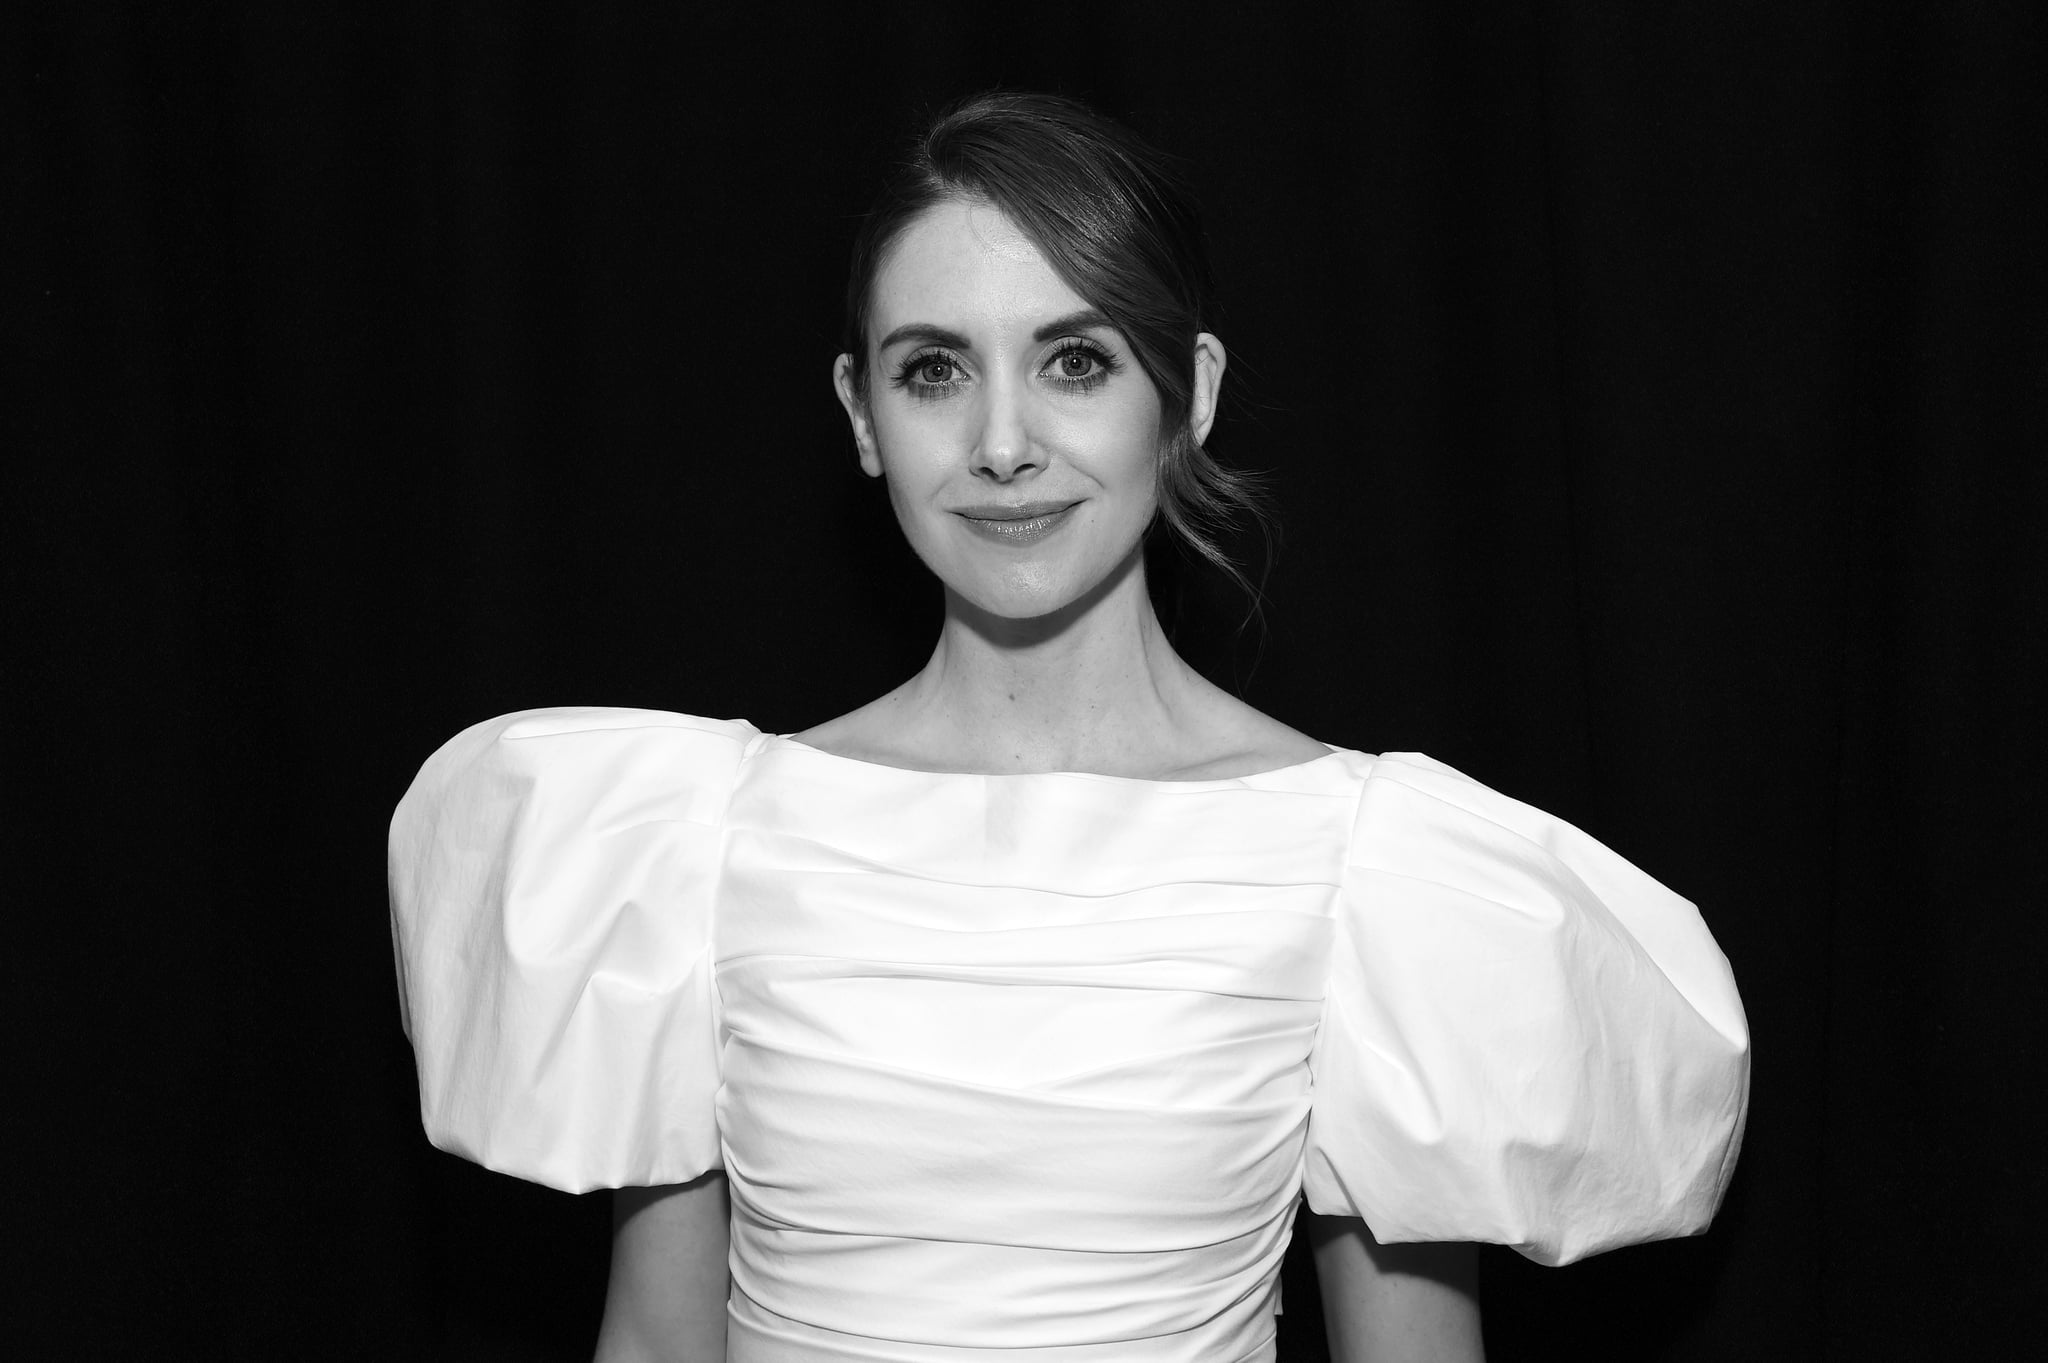 PARK CITY, UTAH - JANUARY 26:  (EDITOR'S NOTE: This image has been converted to black and white) Alison Brie attends the IMDb Studio at Acura Festival Village on January 26, 2020 in Park City, Utah. (Photo by Michael Kovac/Getty Images for Acura)